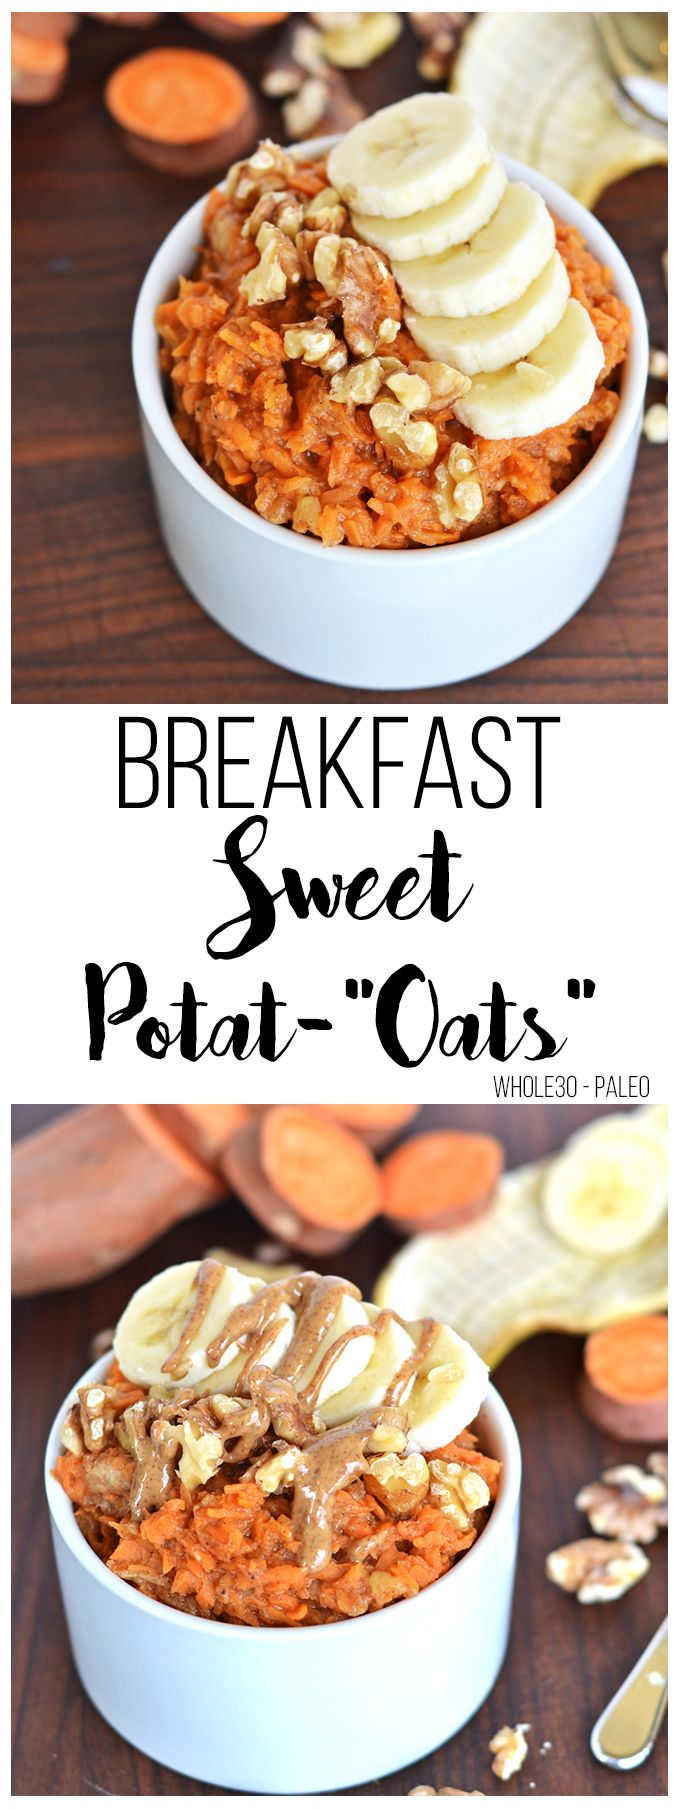 "Need a Grain free breakfast option that isn't eggs? These Breakfast Sweet Potat-""Oats"" are the perfect Whole30 & Paleo option to mix up your breakfast routine!"